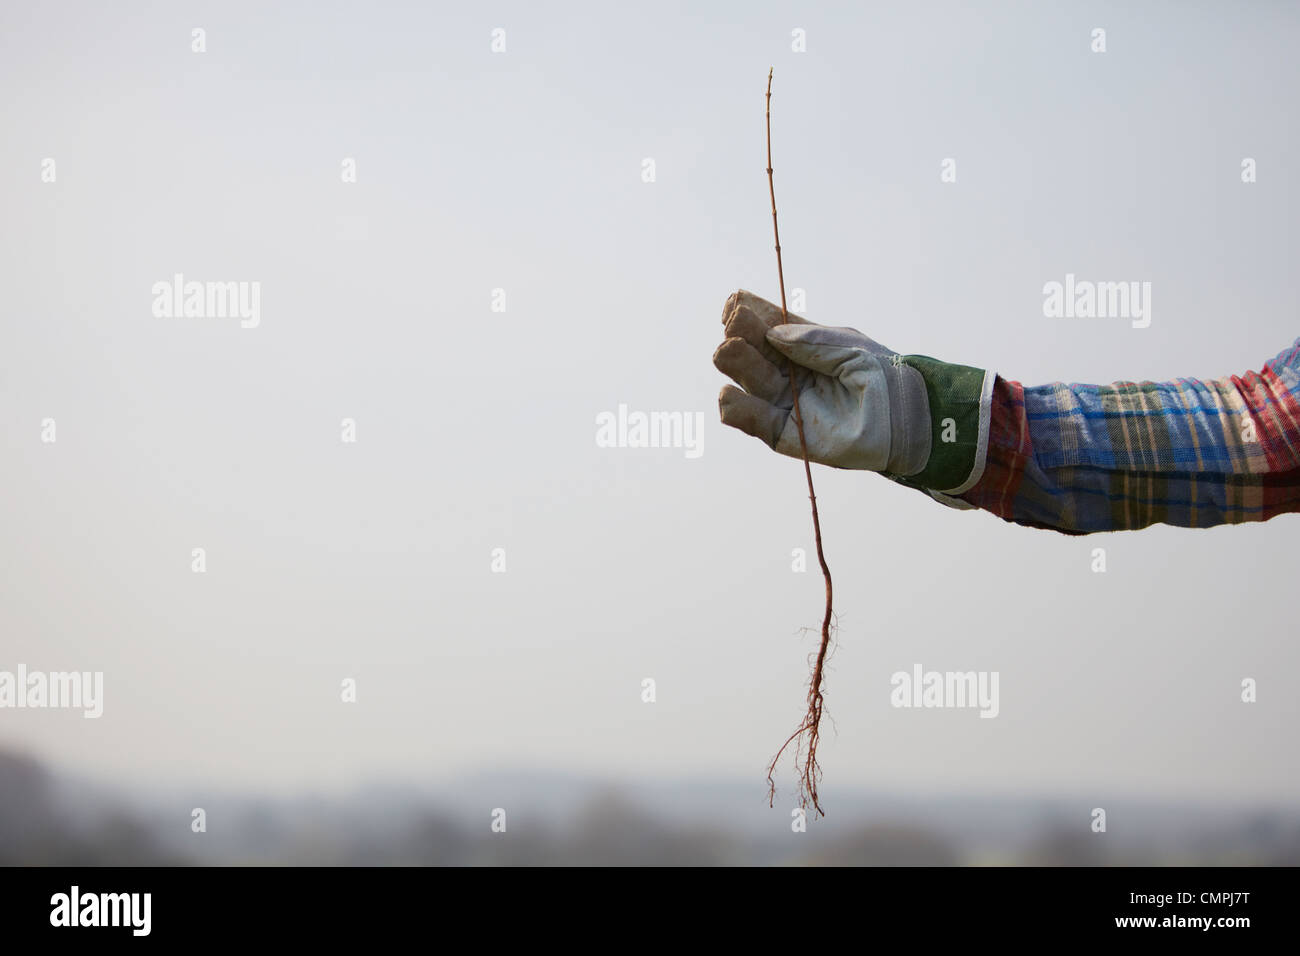 outstretched arm holding a sapling - Stock Image